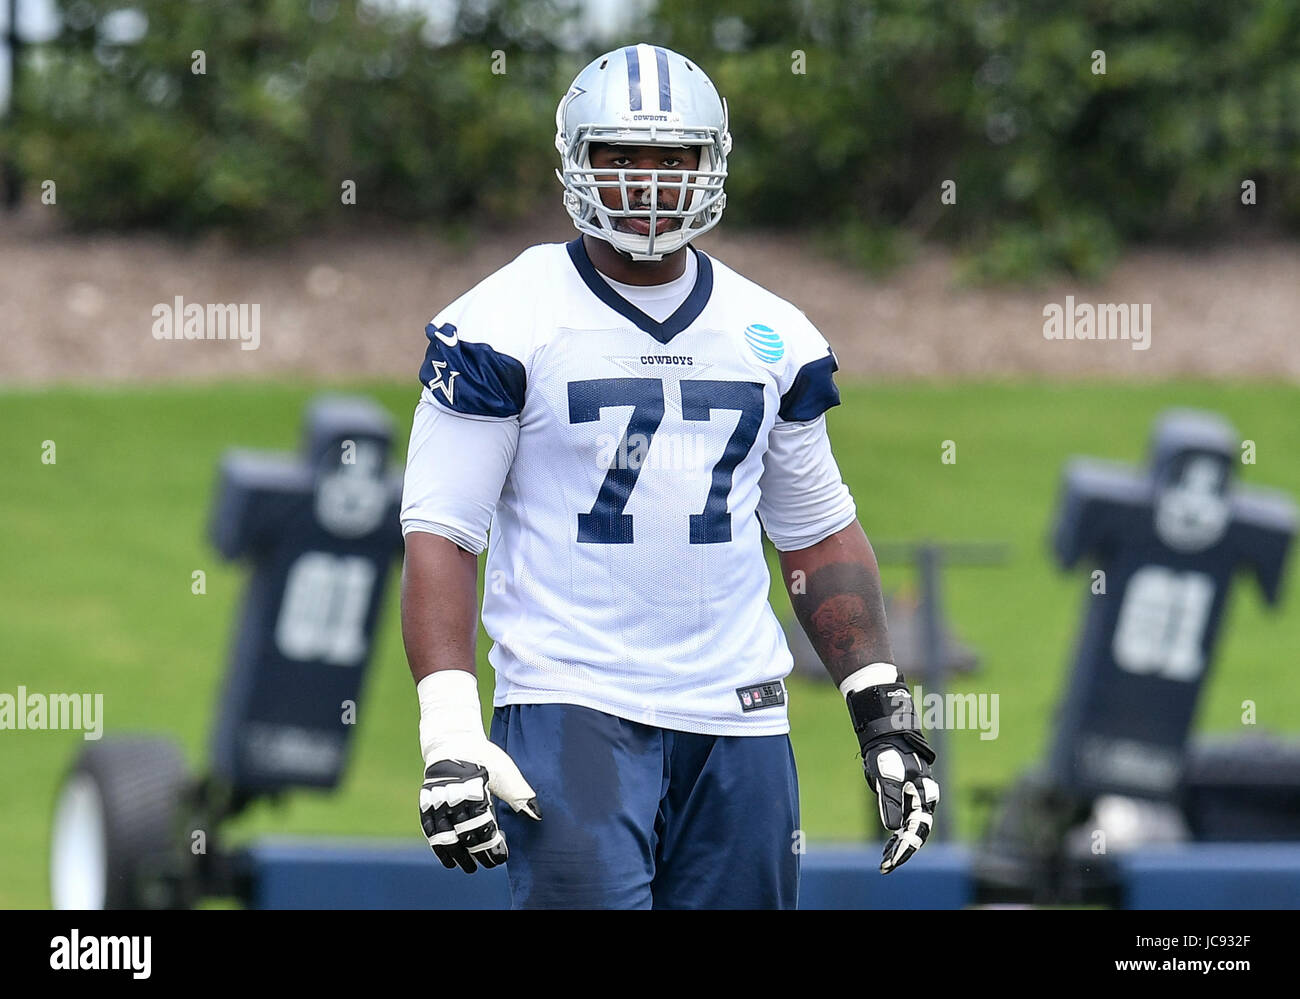 June 14th 2017 Dallas Cowboys tackle Tyron Smith 77 during a